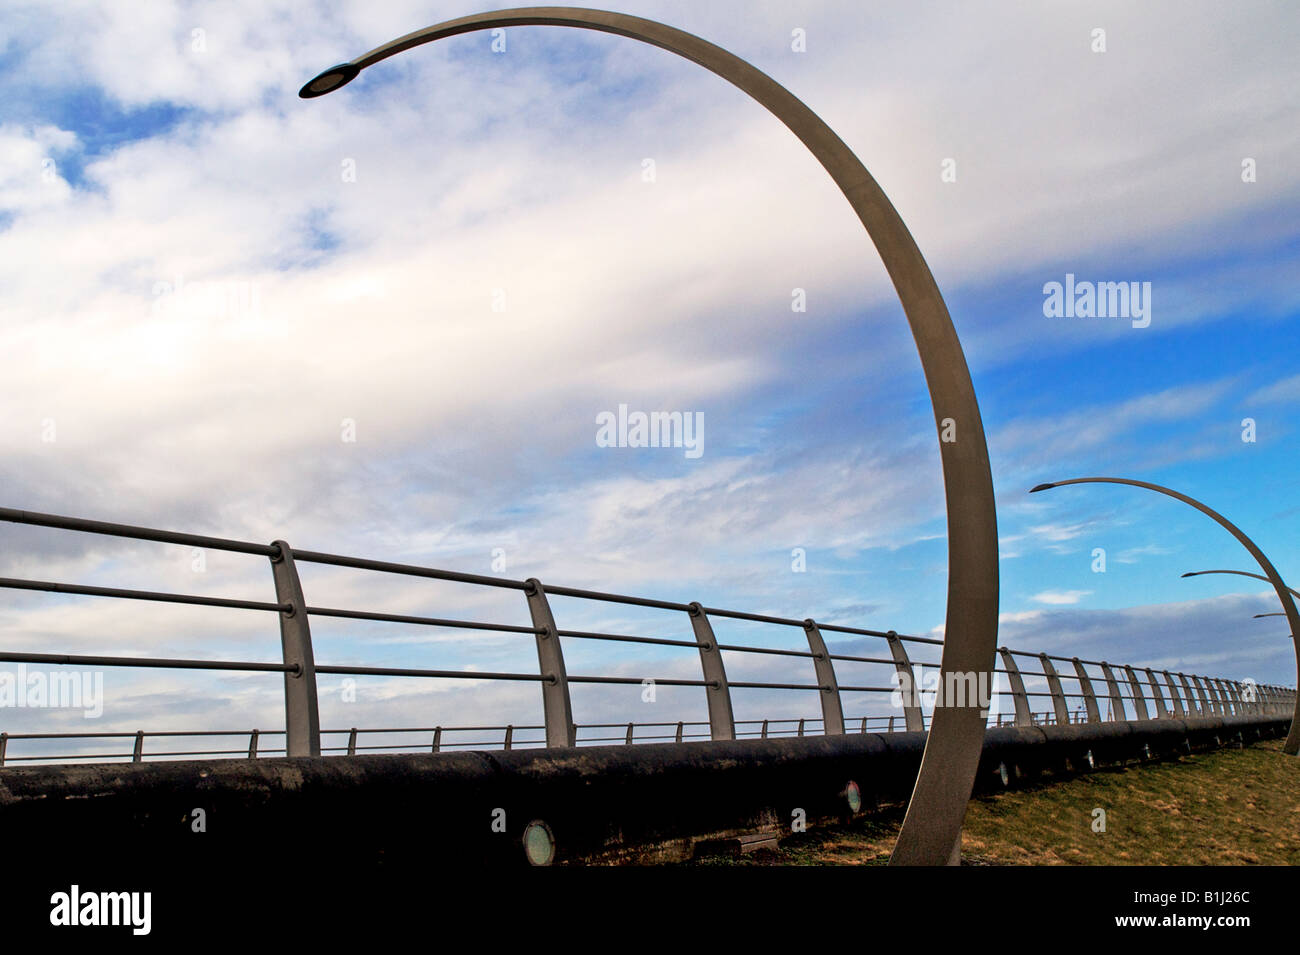 The unusual curved lighting on South Promenade Blackpool - Stock Image